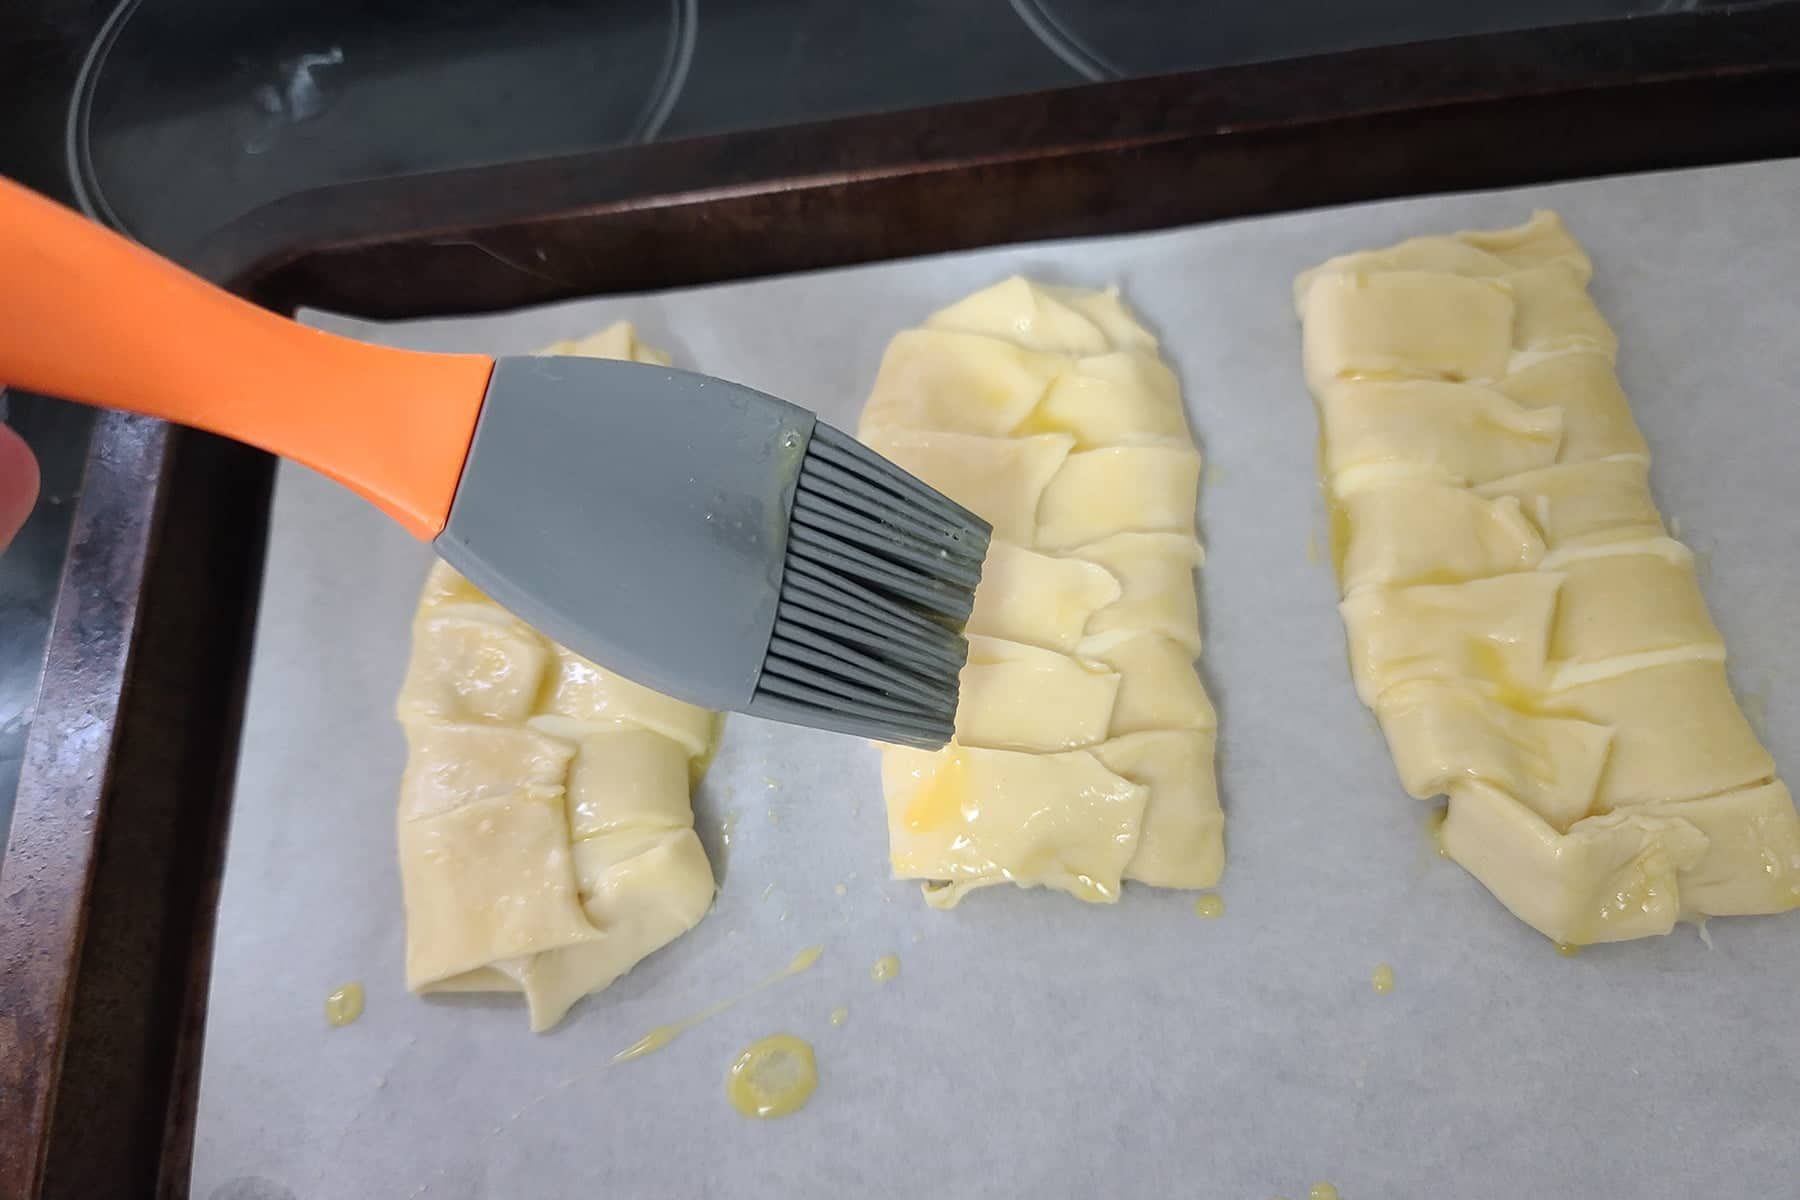 A silicone pastry brush is used to brush honey-egg mixture over the braided pastries.